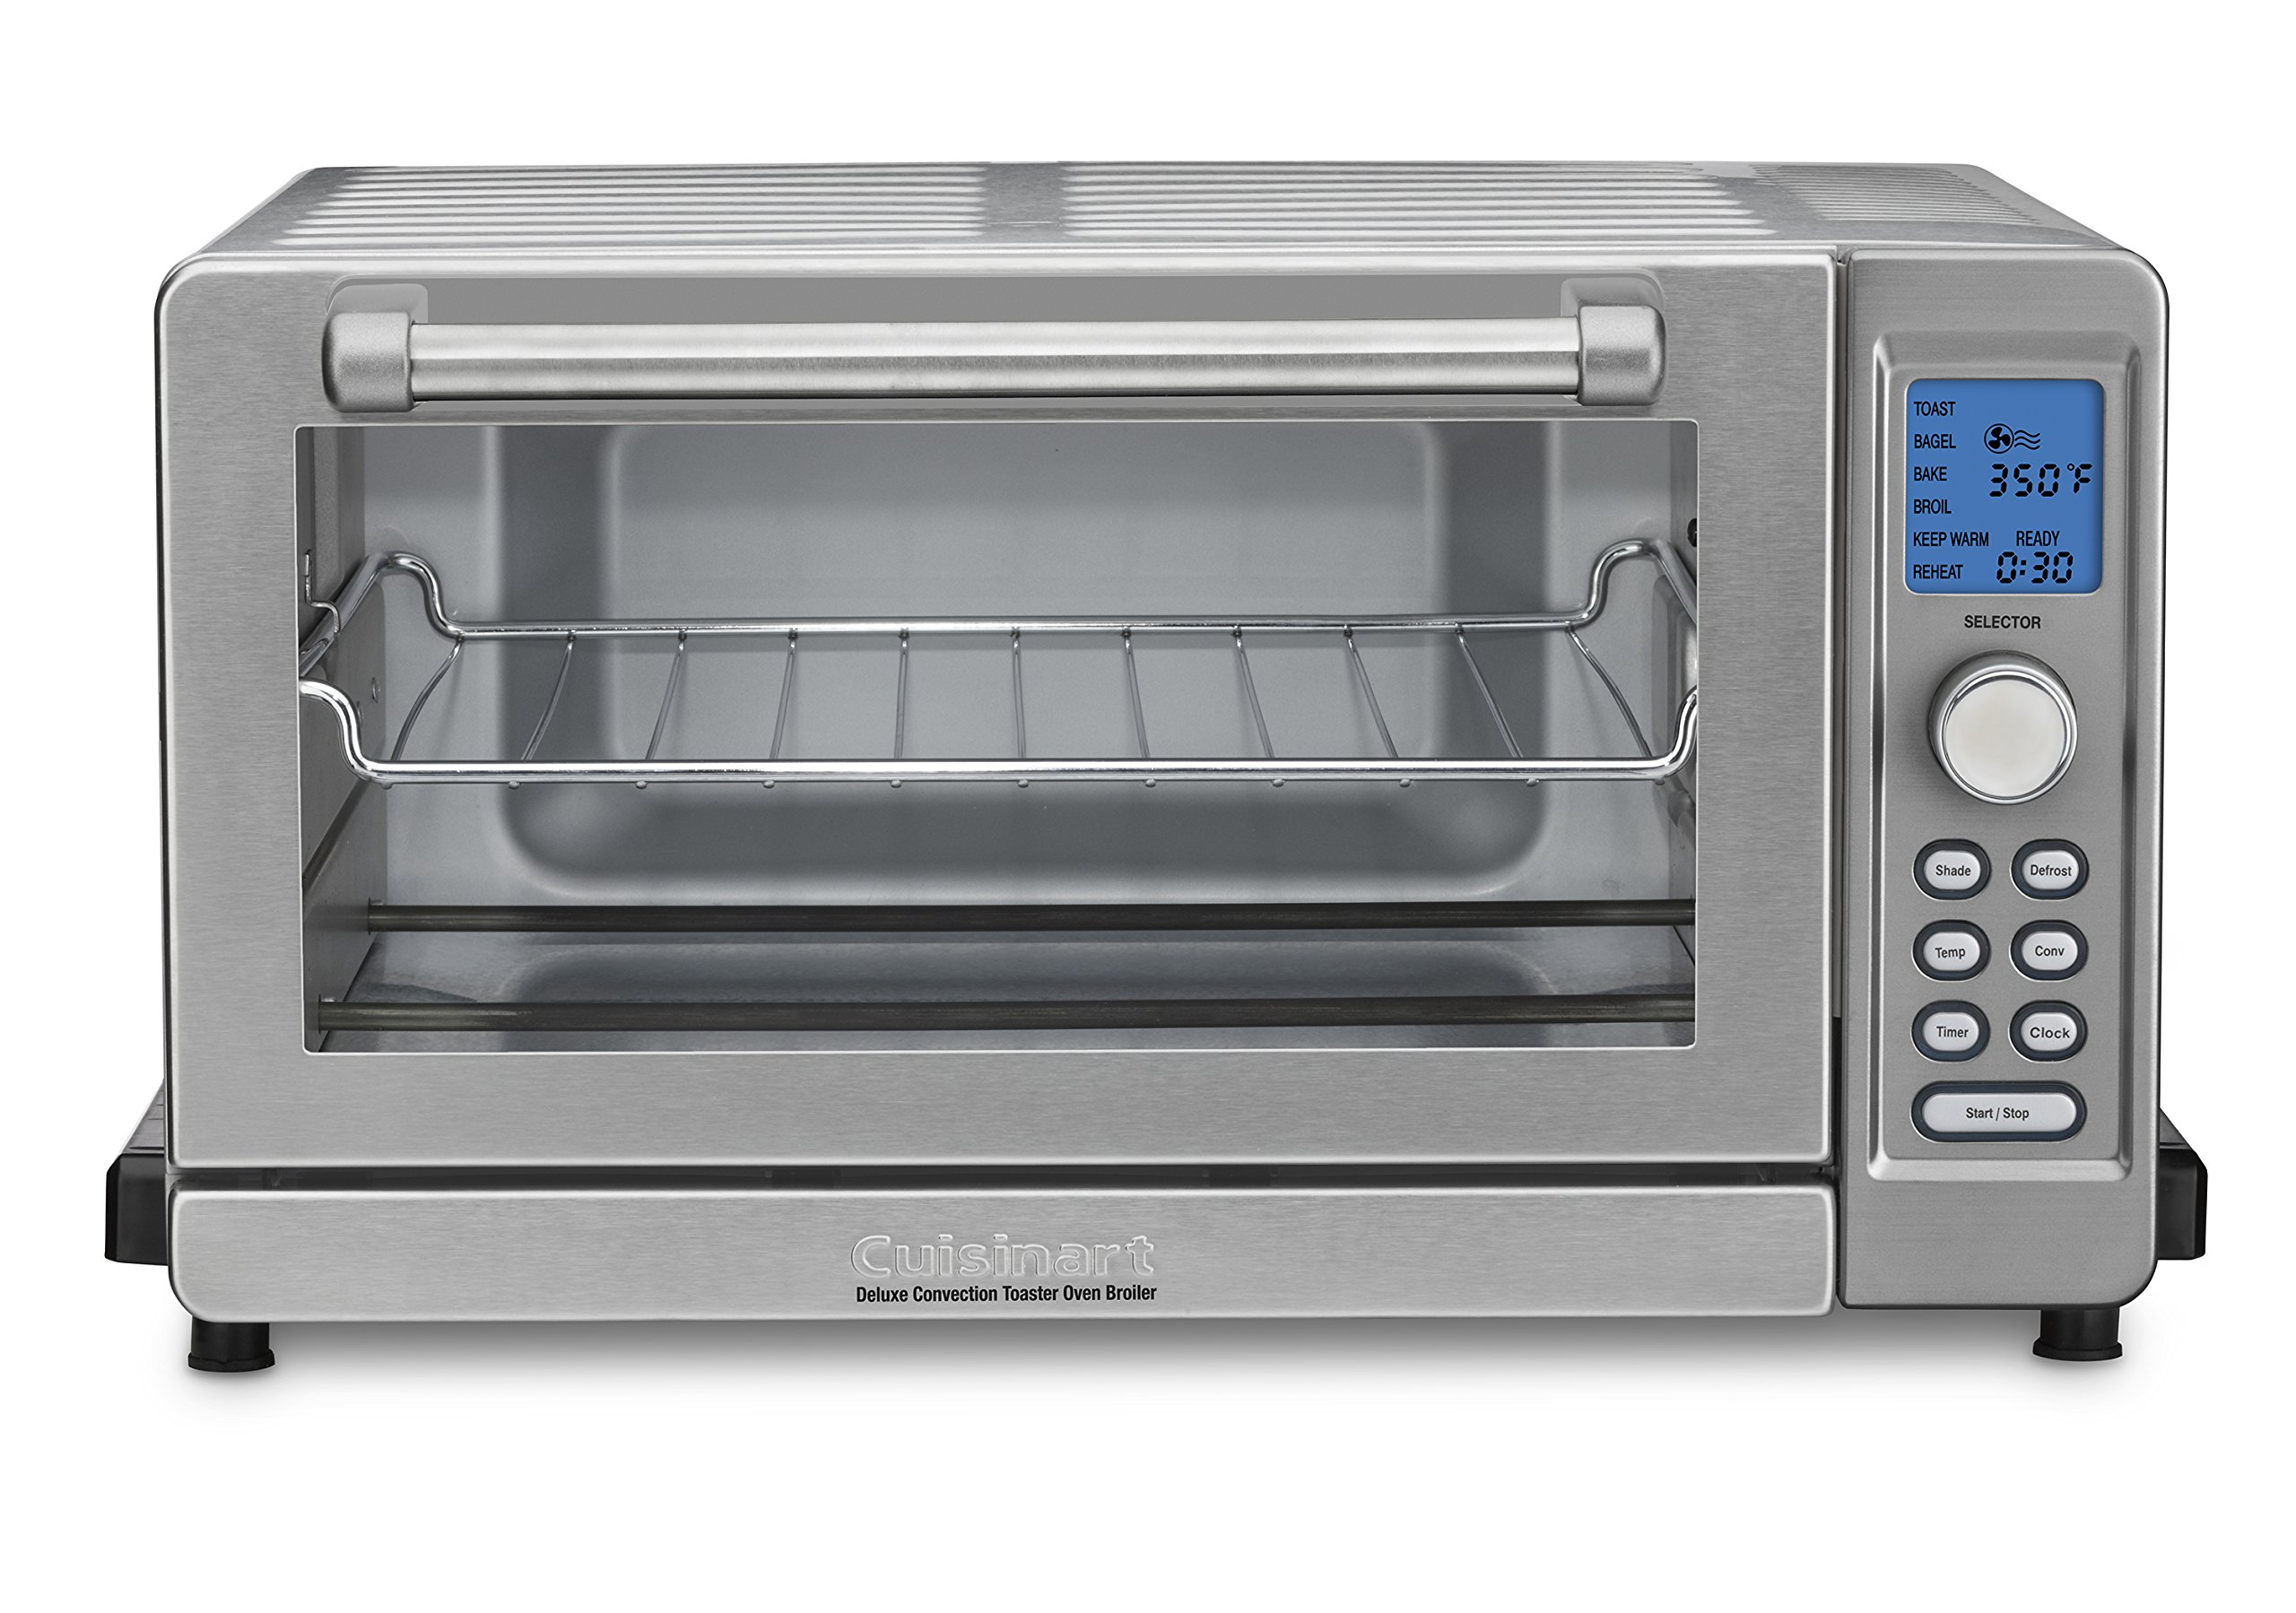 Cuisinart TOB-135N Deluxe Convection Toaster Oven Broiler,  Stainless Steel by Cuisinart